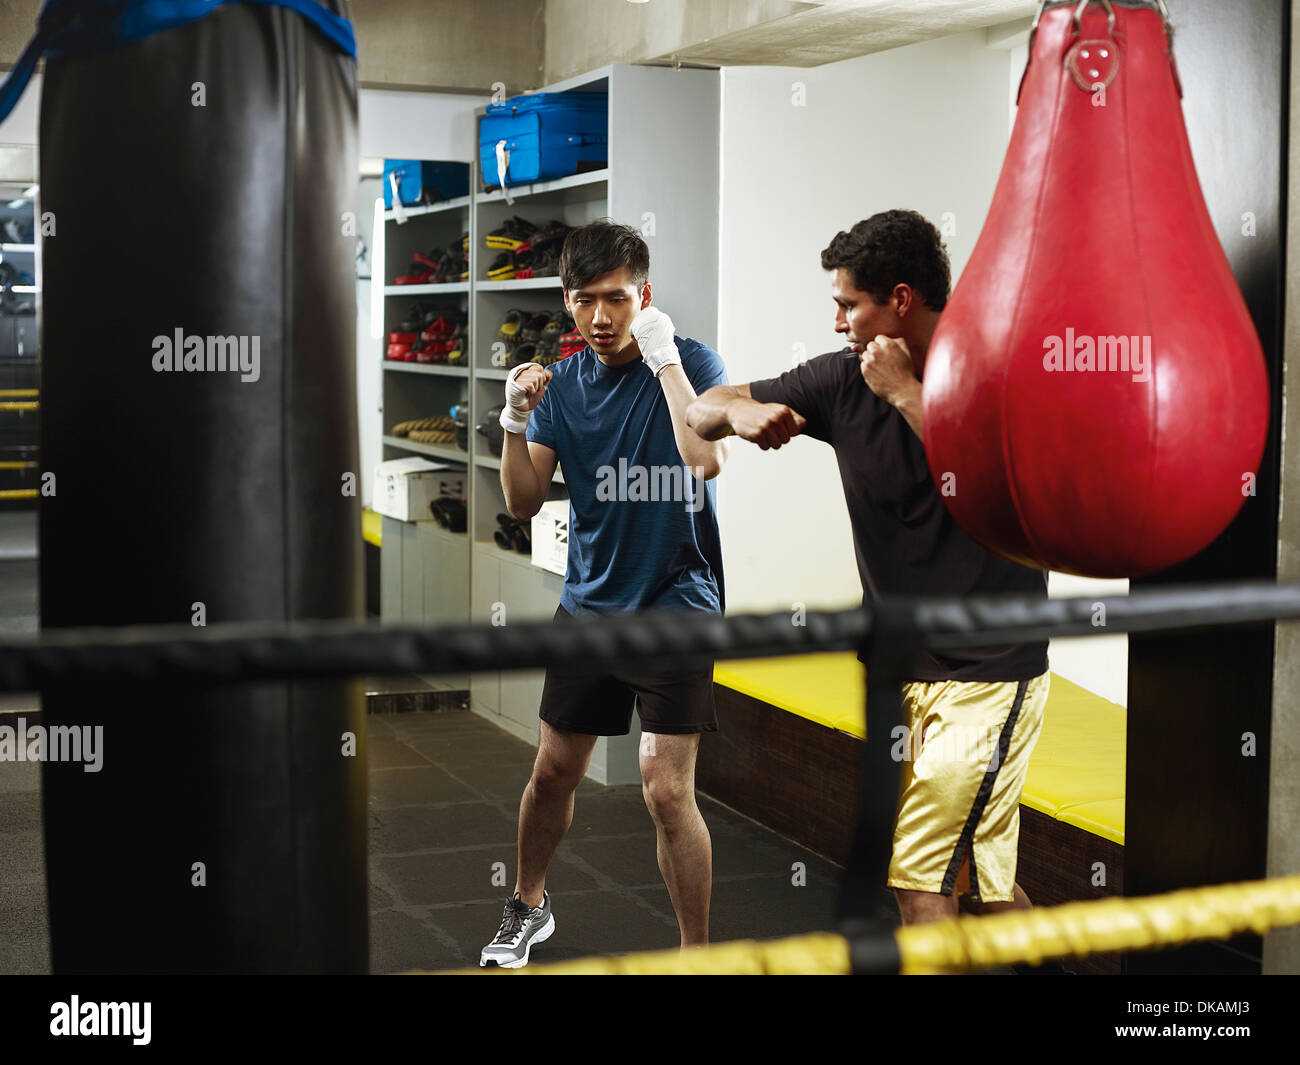 Boxers warming up in changing room - Stock Image